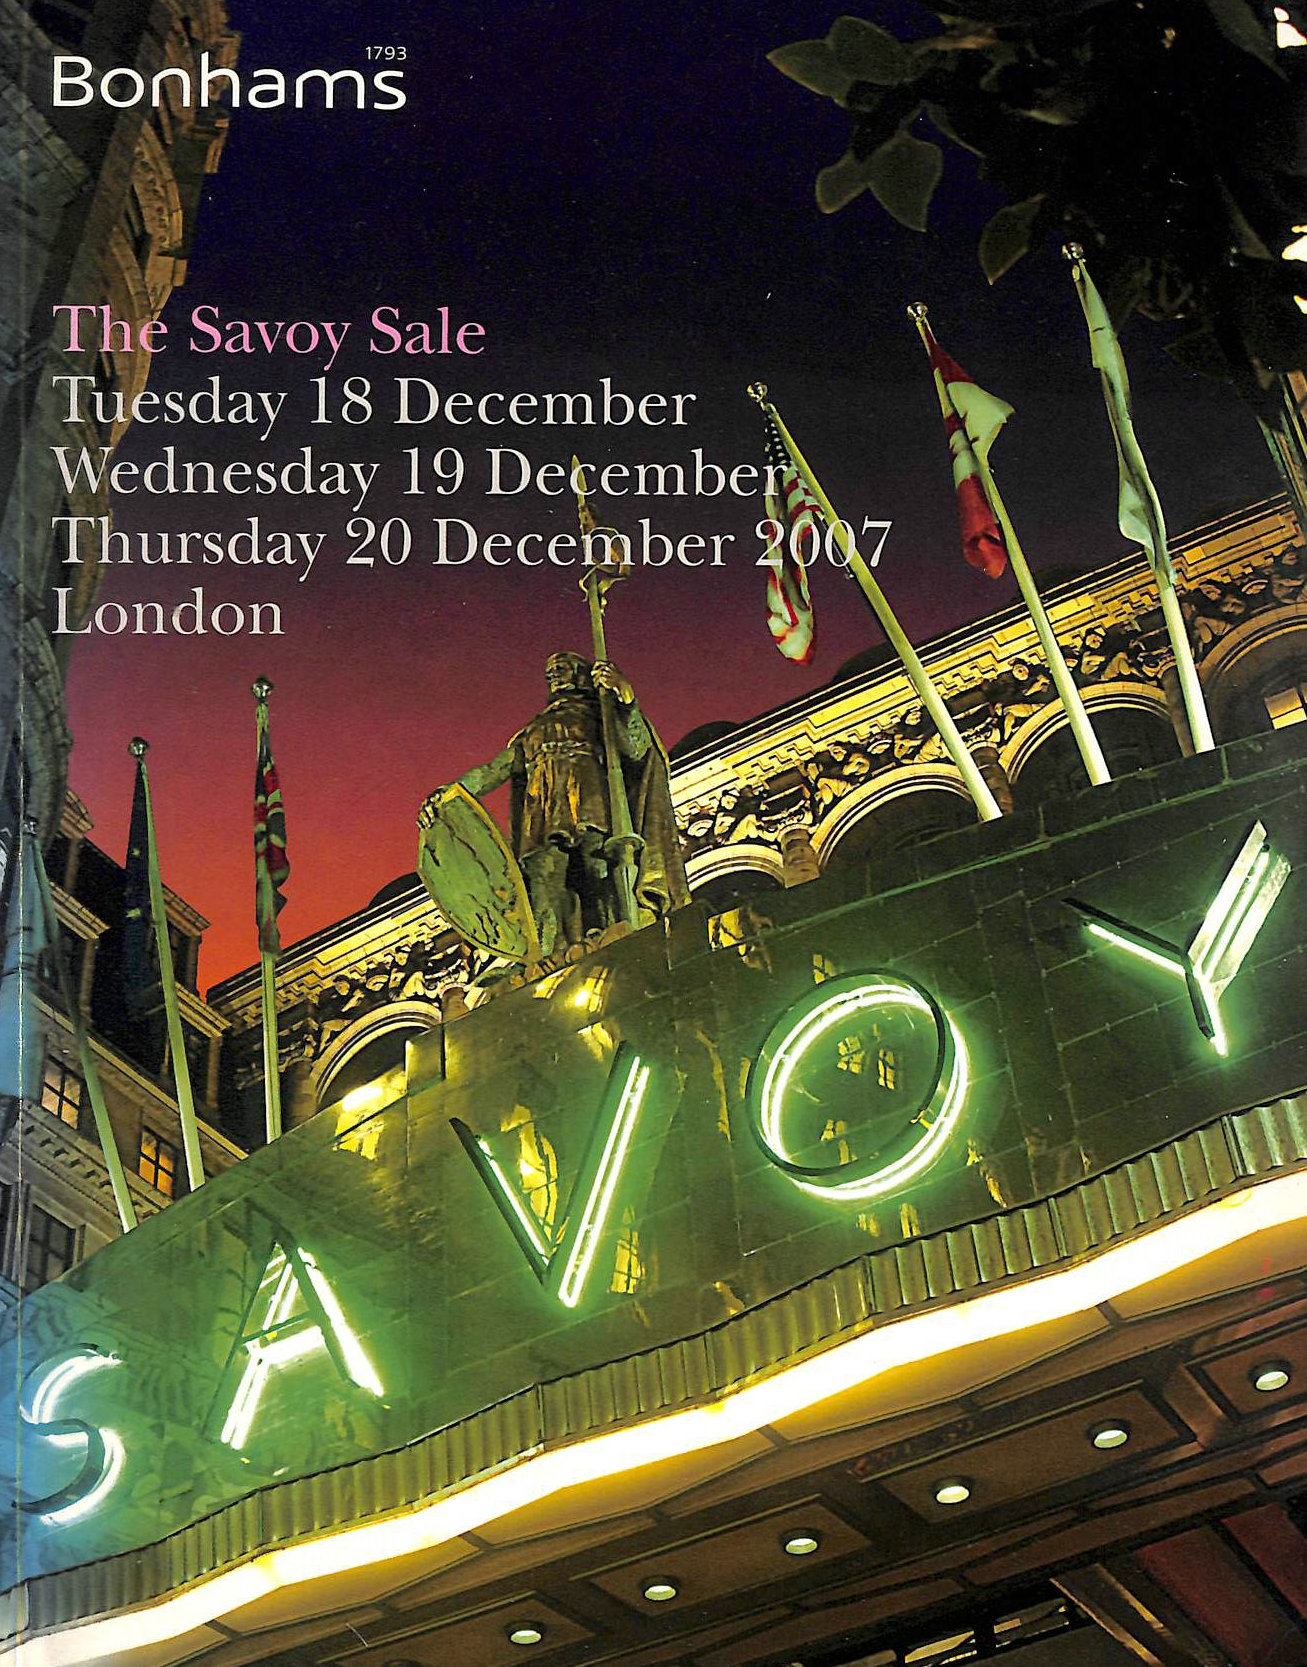 Image for The Savoy Sale: Tuesday 18 December, Wednesday 19 December, Thursday 20 December 2007, London